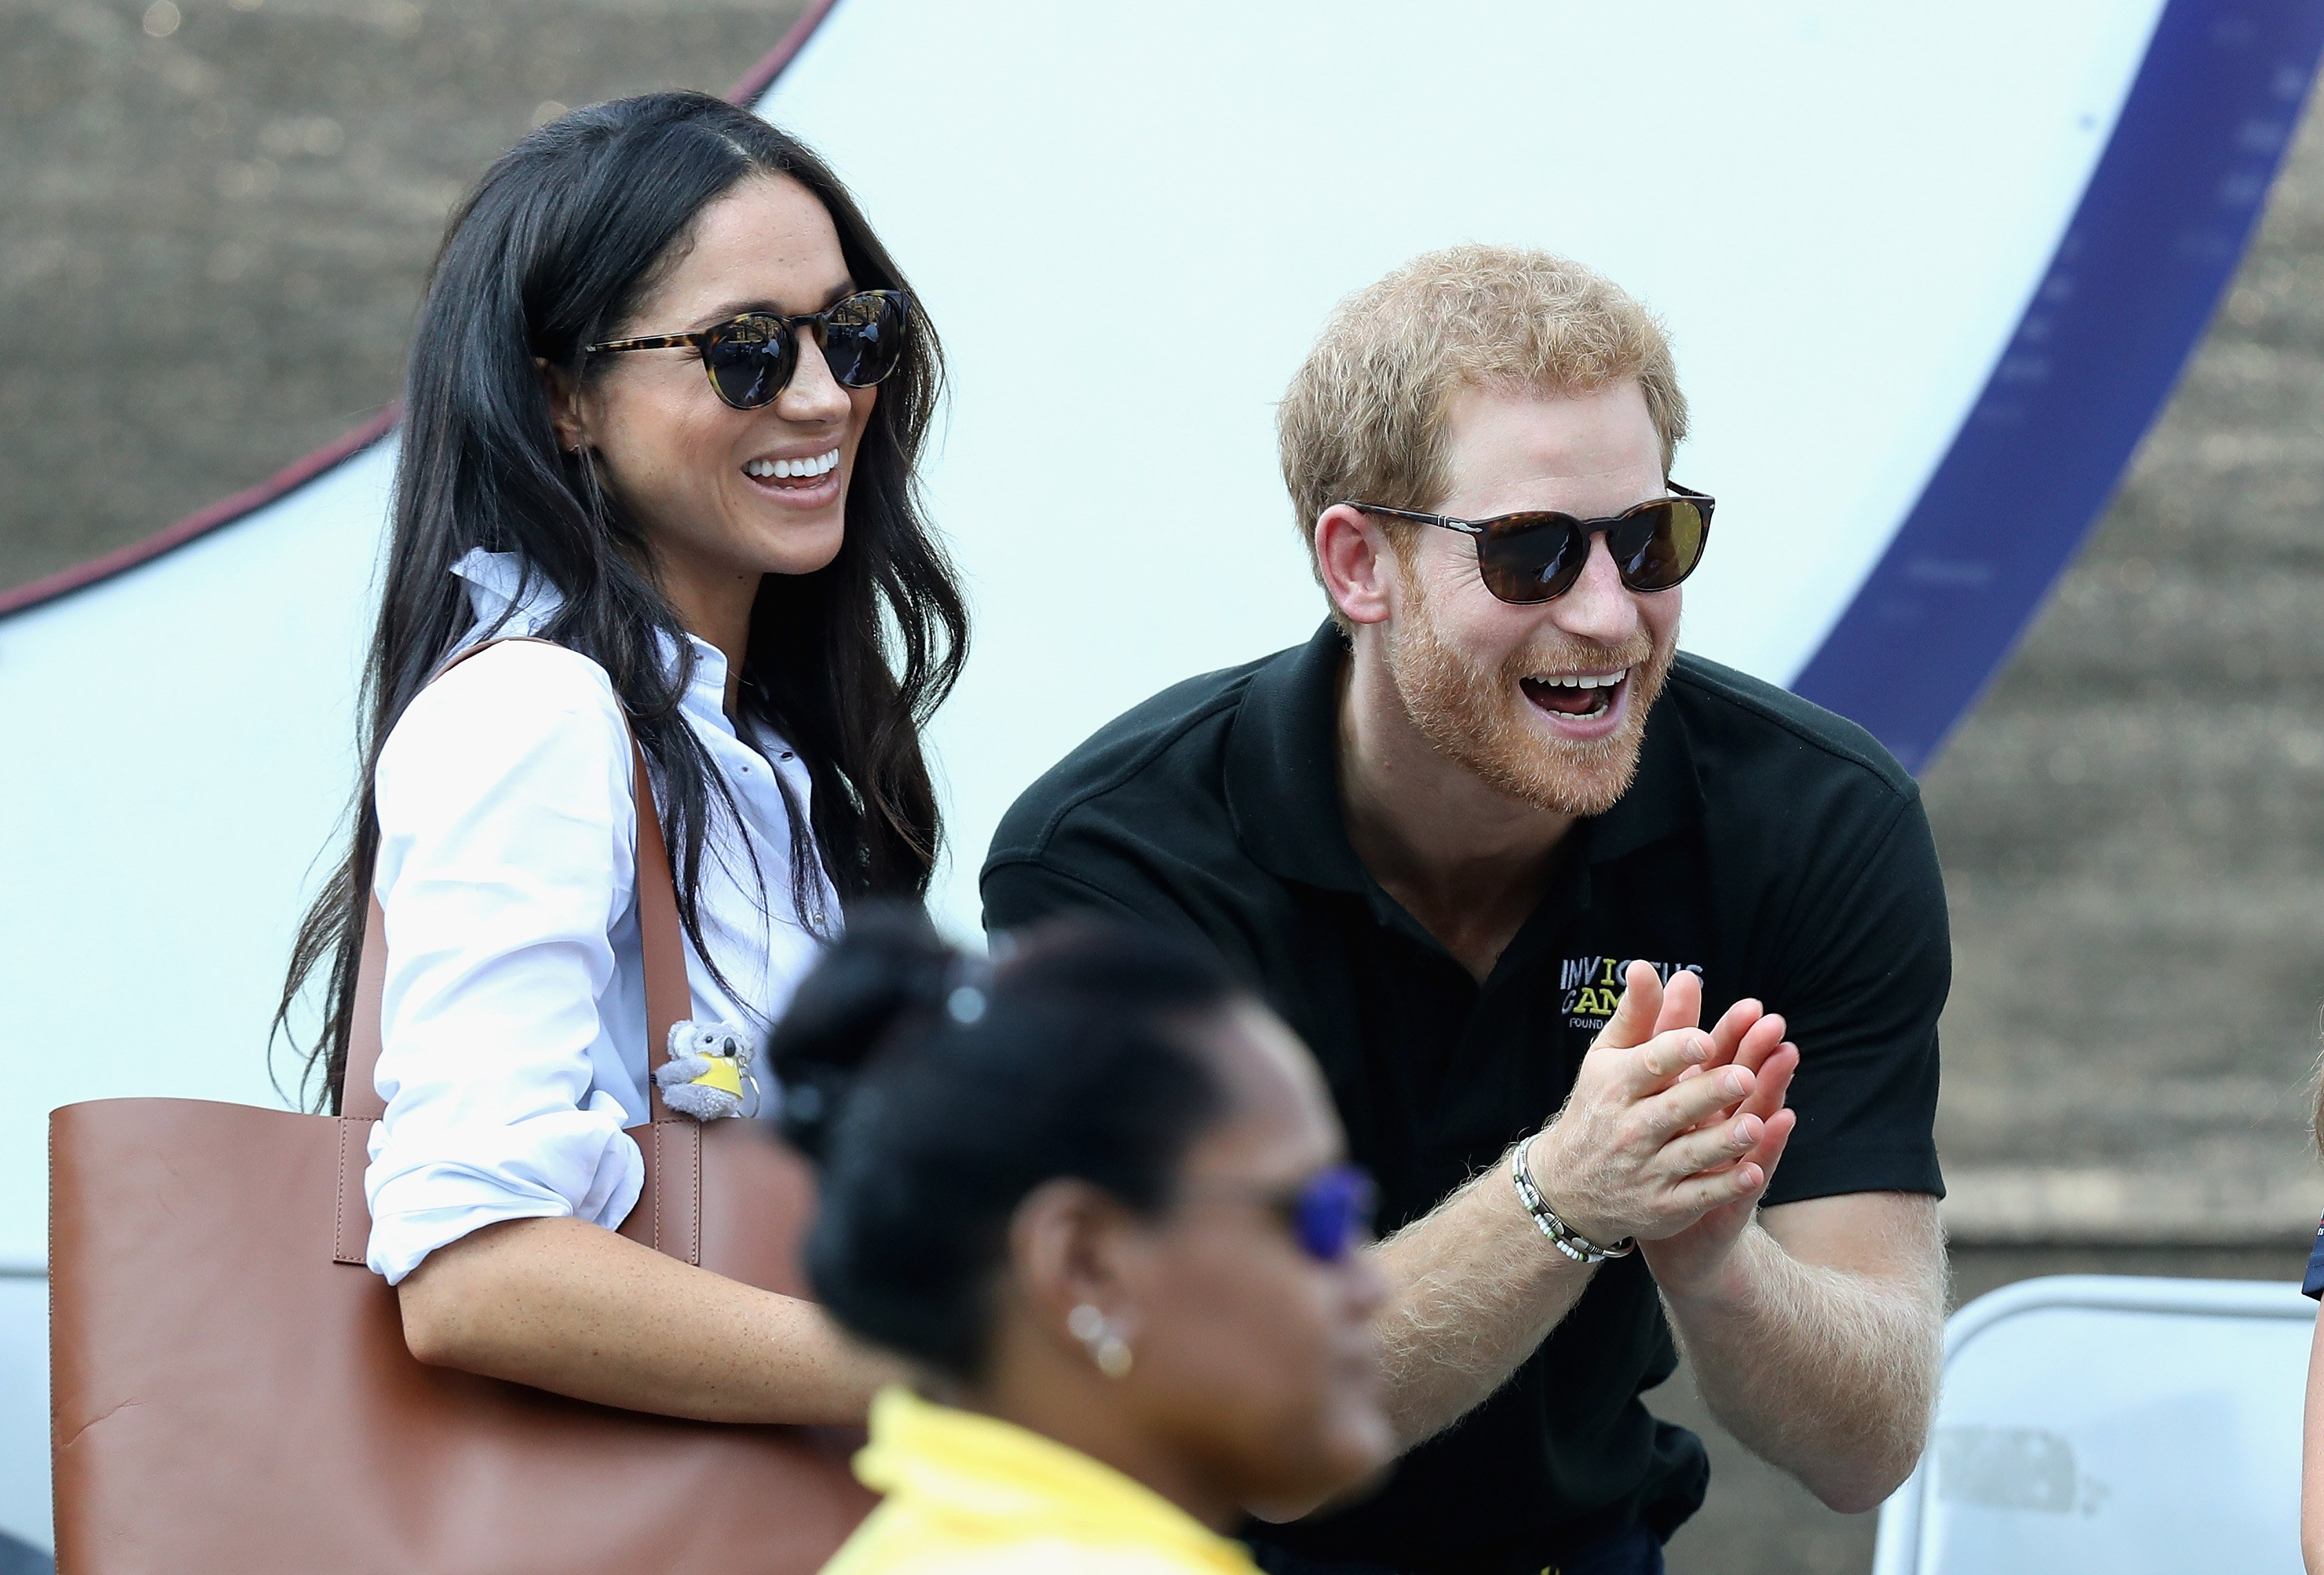 Image Credits: Getty Images / Chris Jackson | Prince Harry (R) and Meghan Markle (L) attend a Wheelchair Tennis match during the Invictus Games 2017 at Nathan Philips Square on September 25, 2017 in Toronto, Canada.